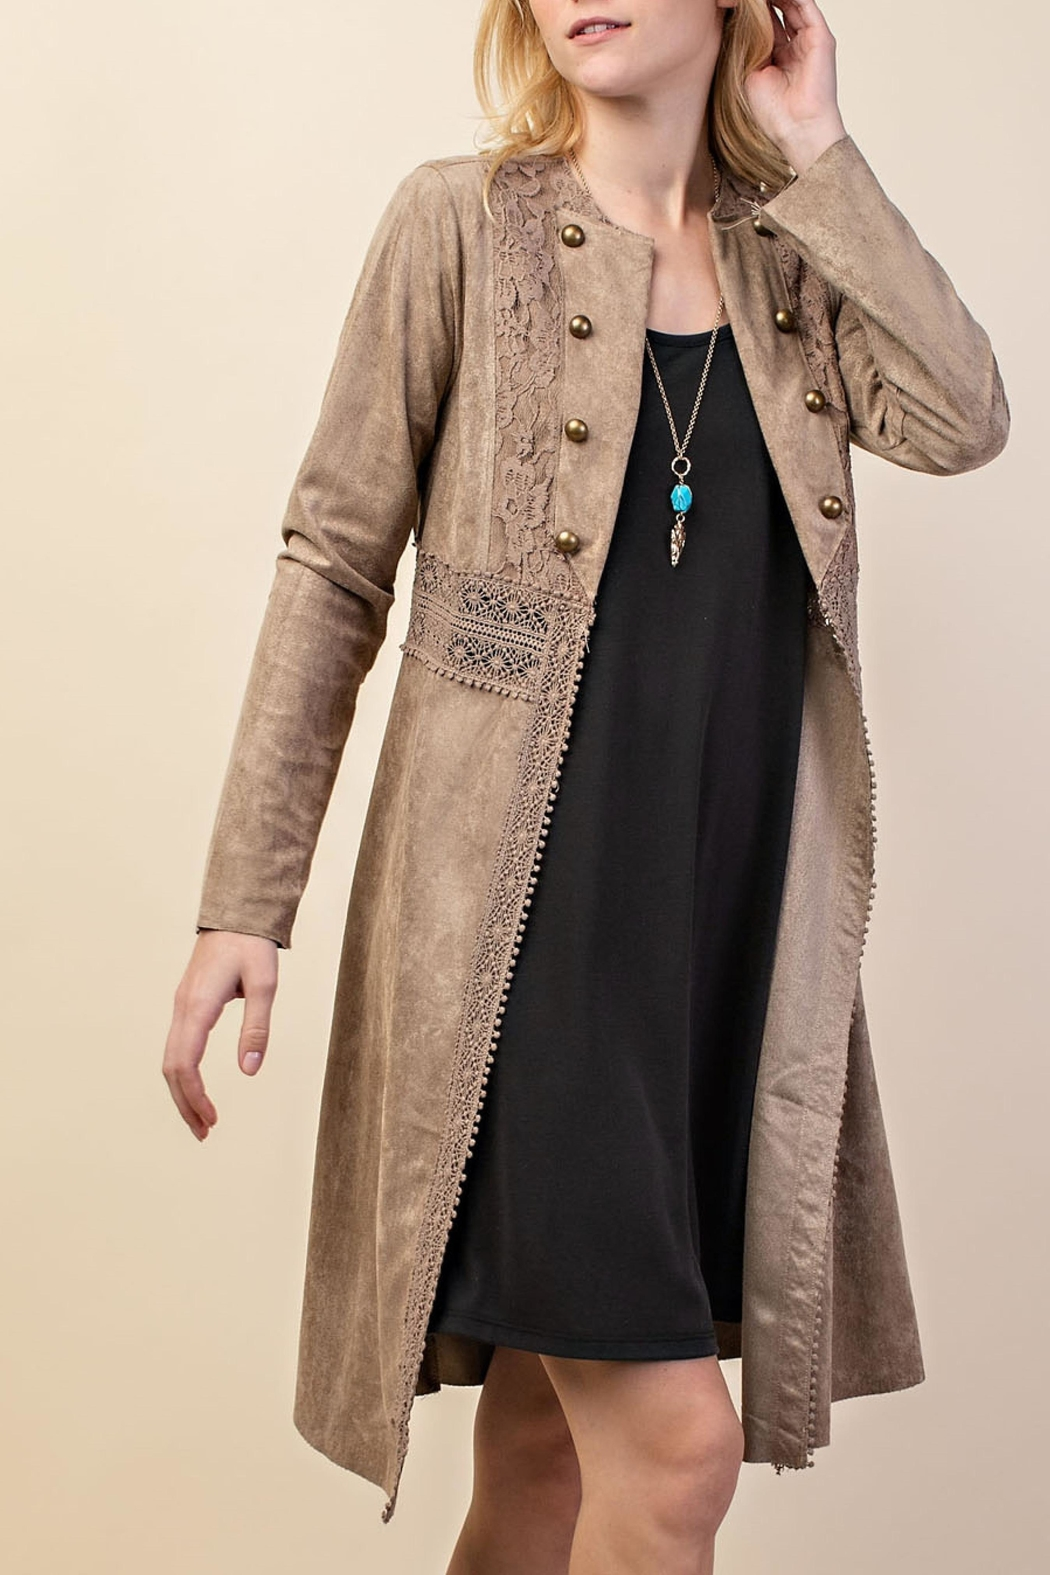 Vocal Apparel Suede Duster Jacket - Main Image